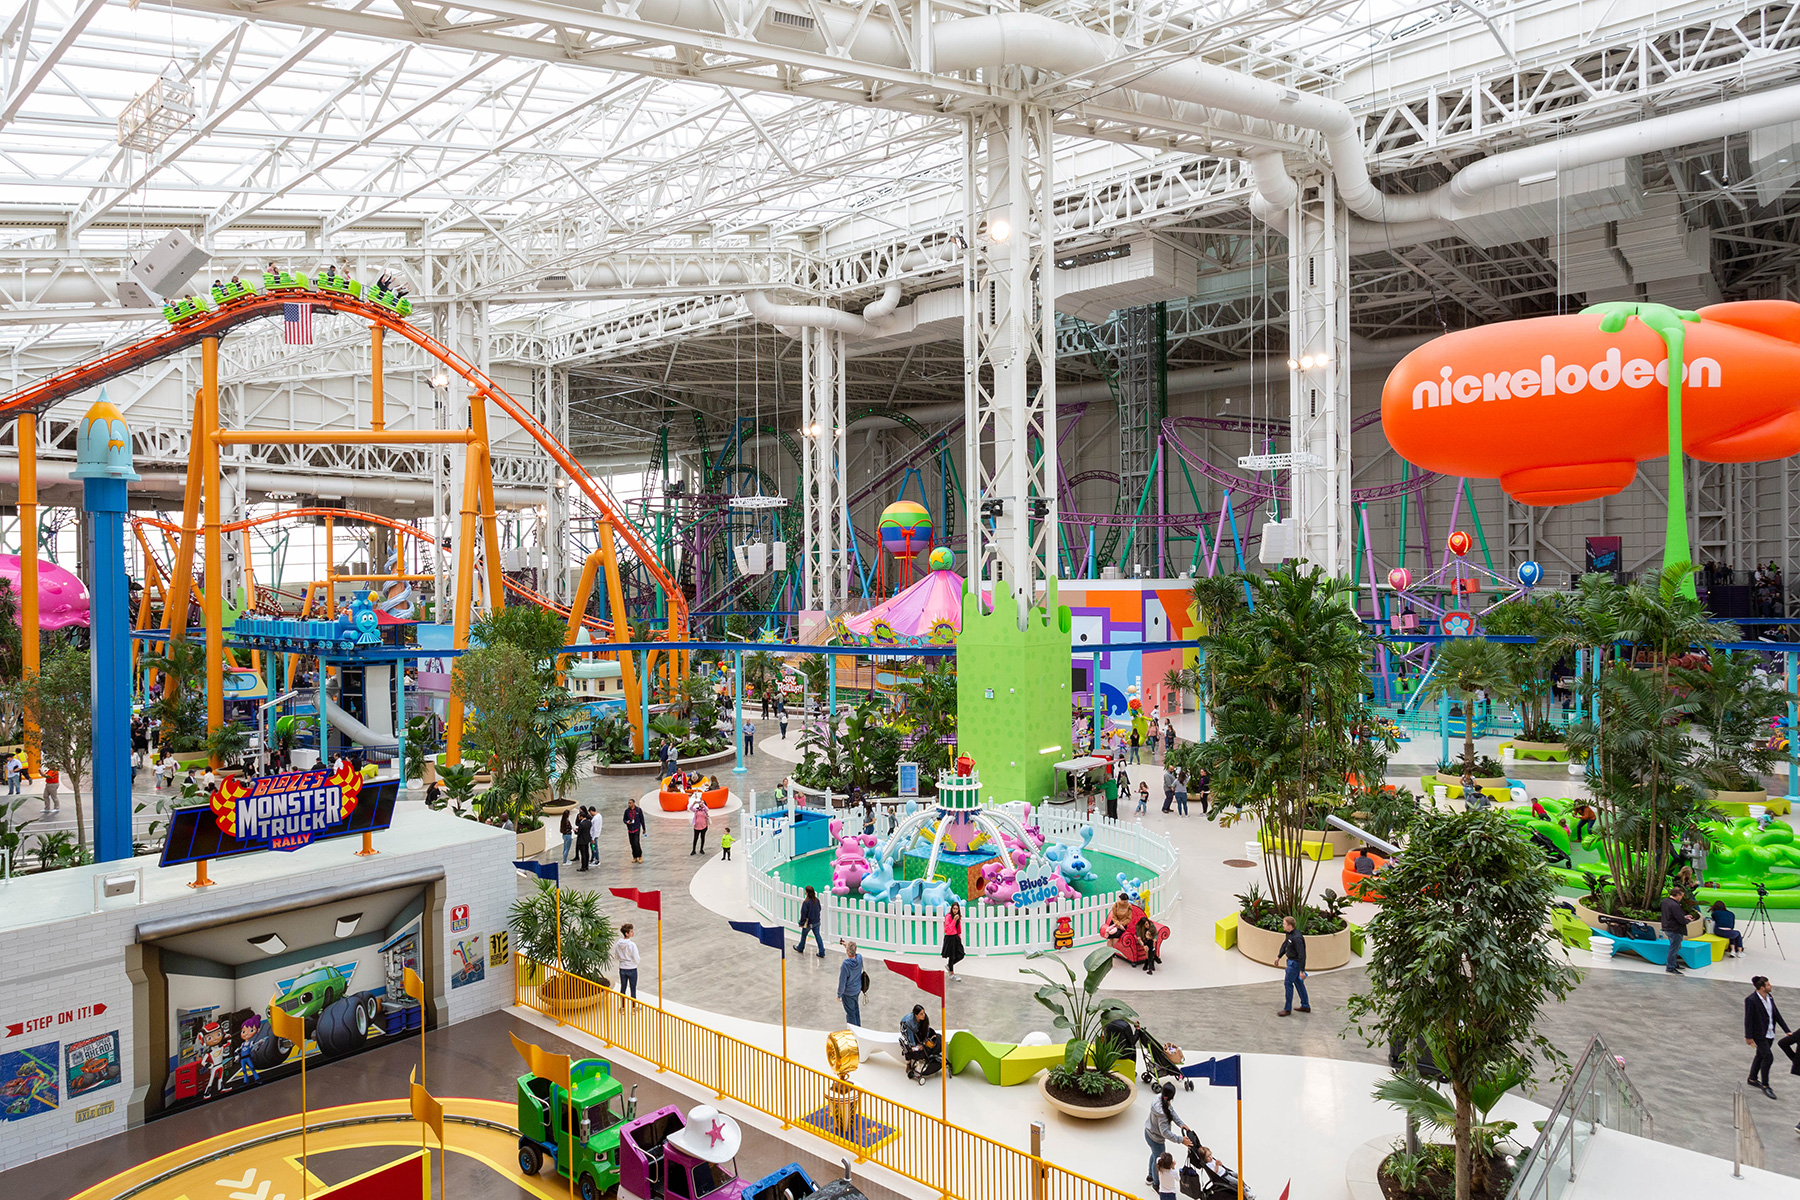 American Dream's Nickelodeon Universe theme park has been open since October, but the complex's stores and restaurants aren't set to debut for months. (John Georgiadis/CoStar)